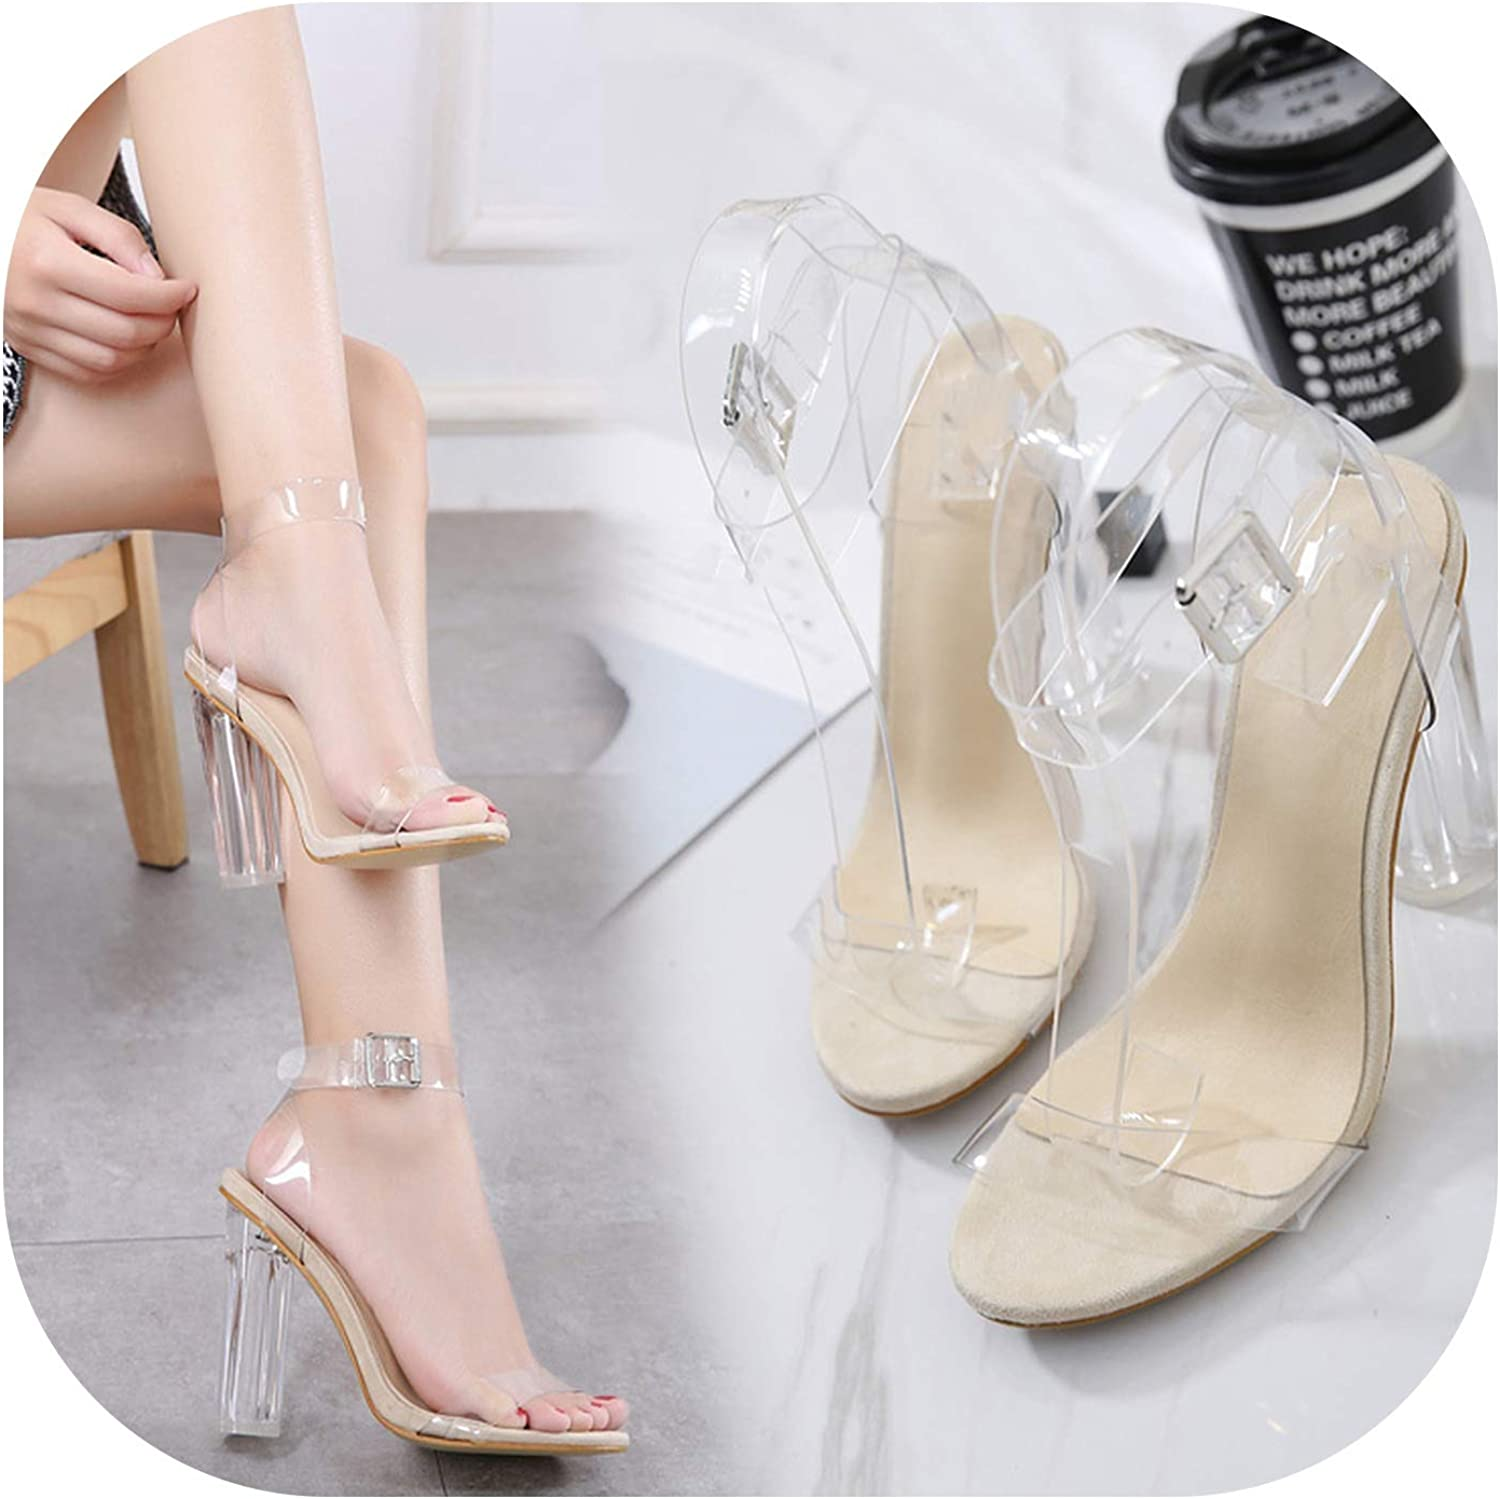 Meet at Corner-heeled-sandals Plus Size Ankle Strap Adjustable Buckle Clear Block Chunky High Heel Sandal Open Toe Dress shoes